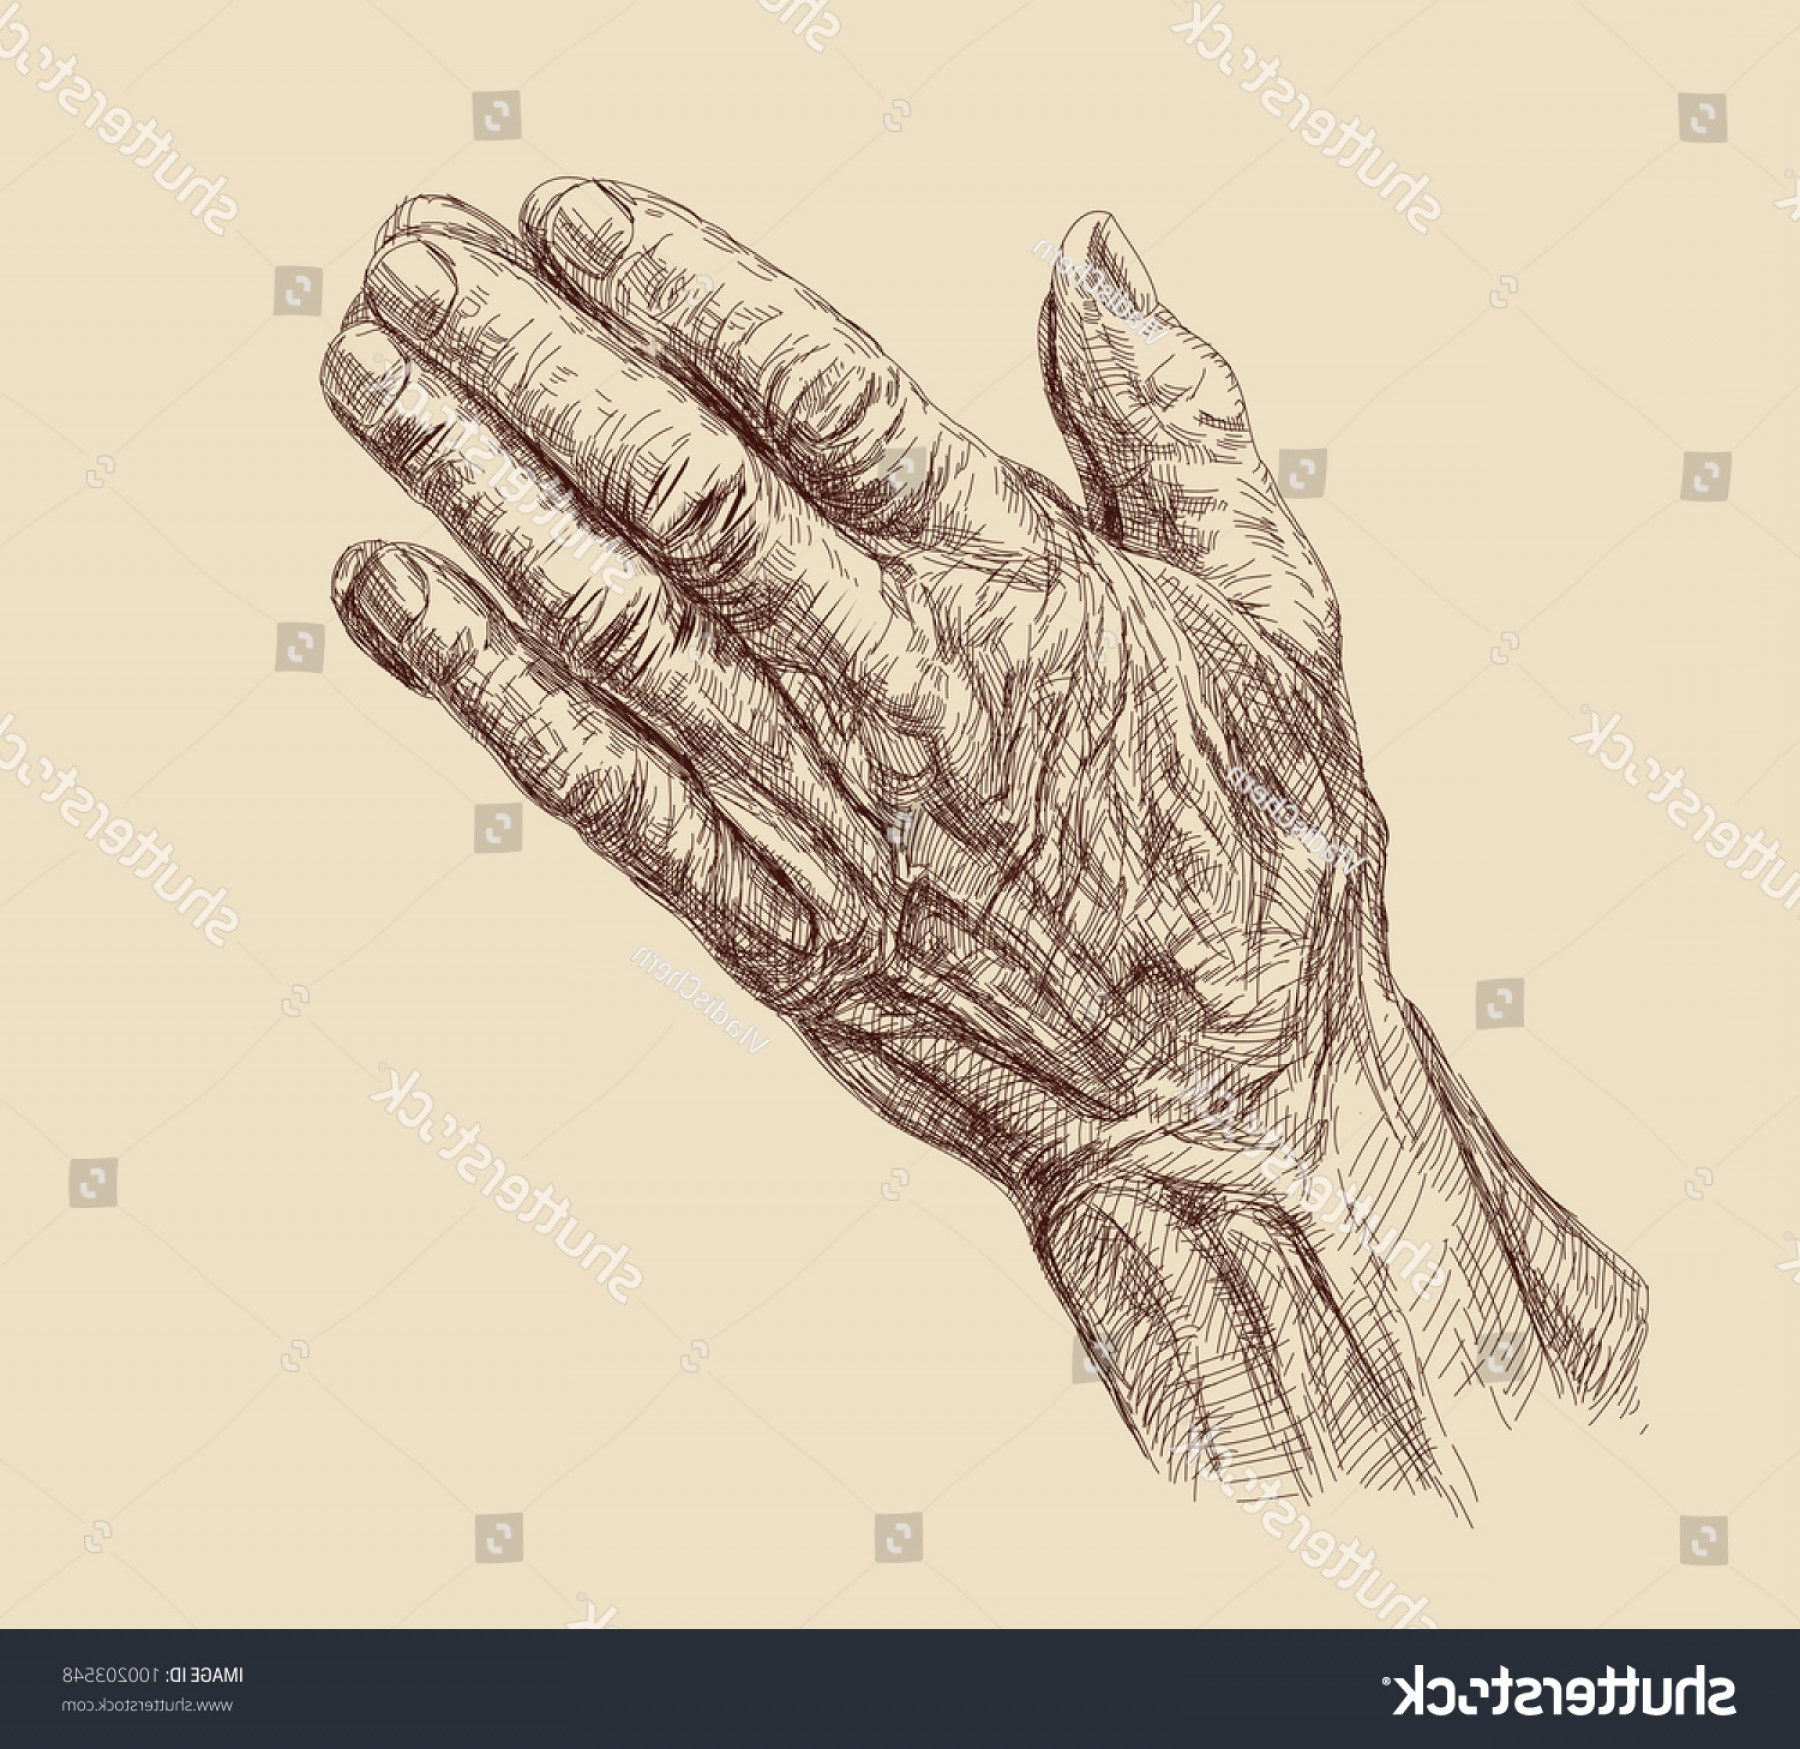 Praying Hands Vectors Shutterstock: Praying Hands Drawing Vector Illustration